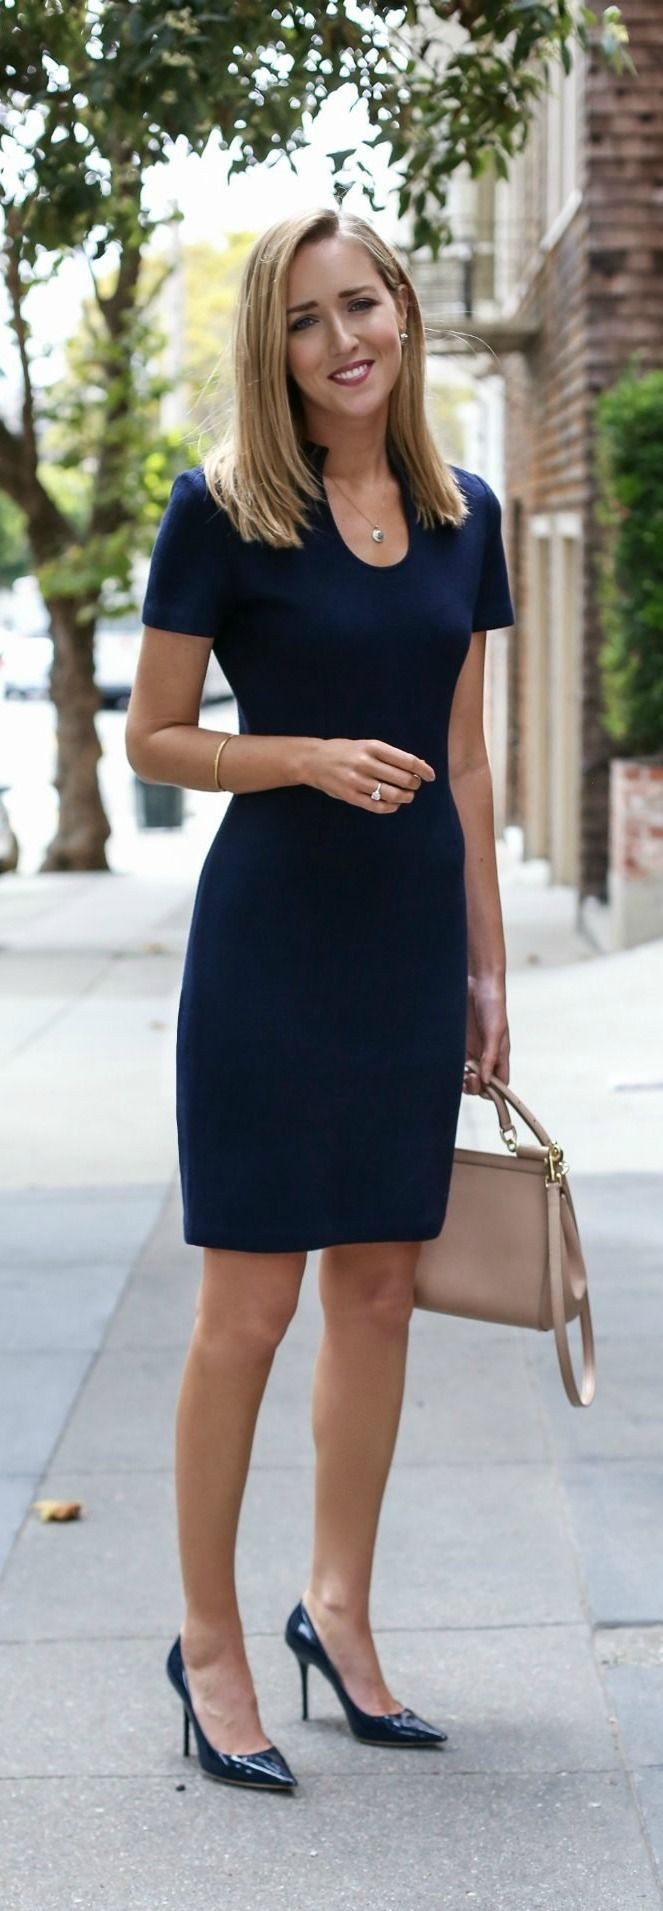 Black dress yellow heels - Navy Knit Sheath Dress Navy Patent Leather Pointed Toe Pumps Nude Satchel